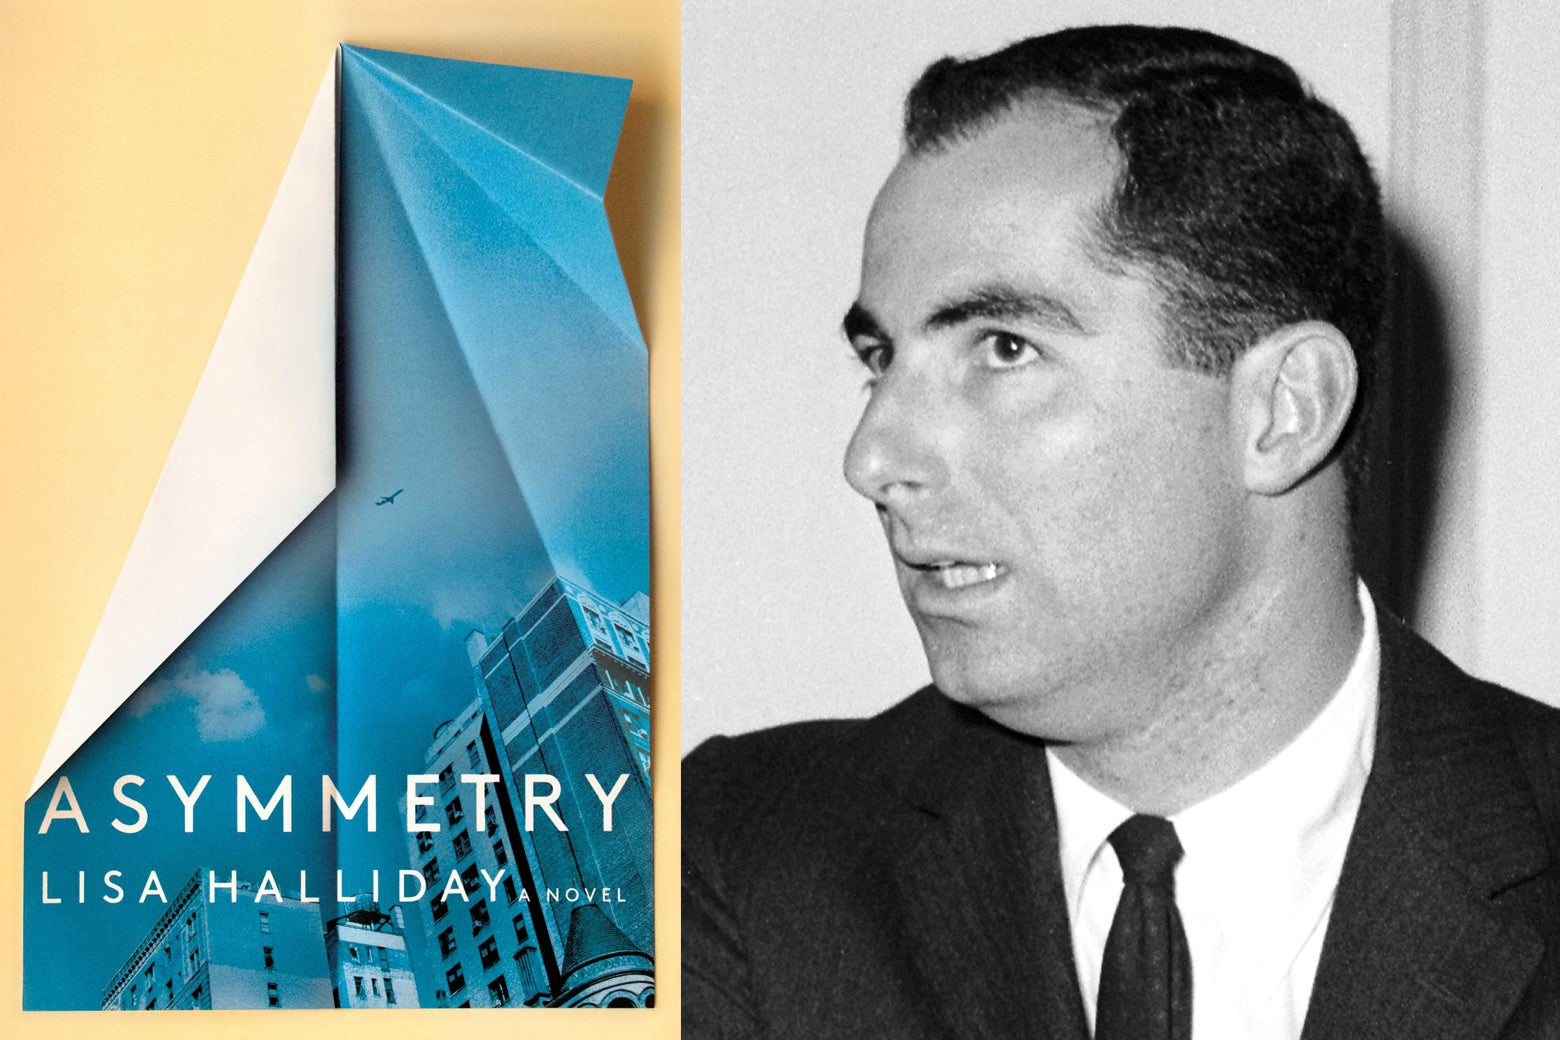 The cover of Lisa Halliday's Asymmetry and a photo of Philip Roth.